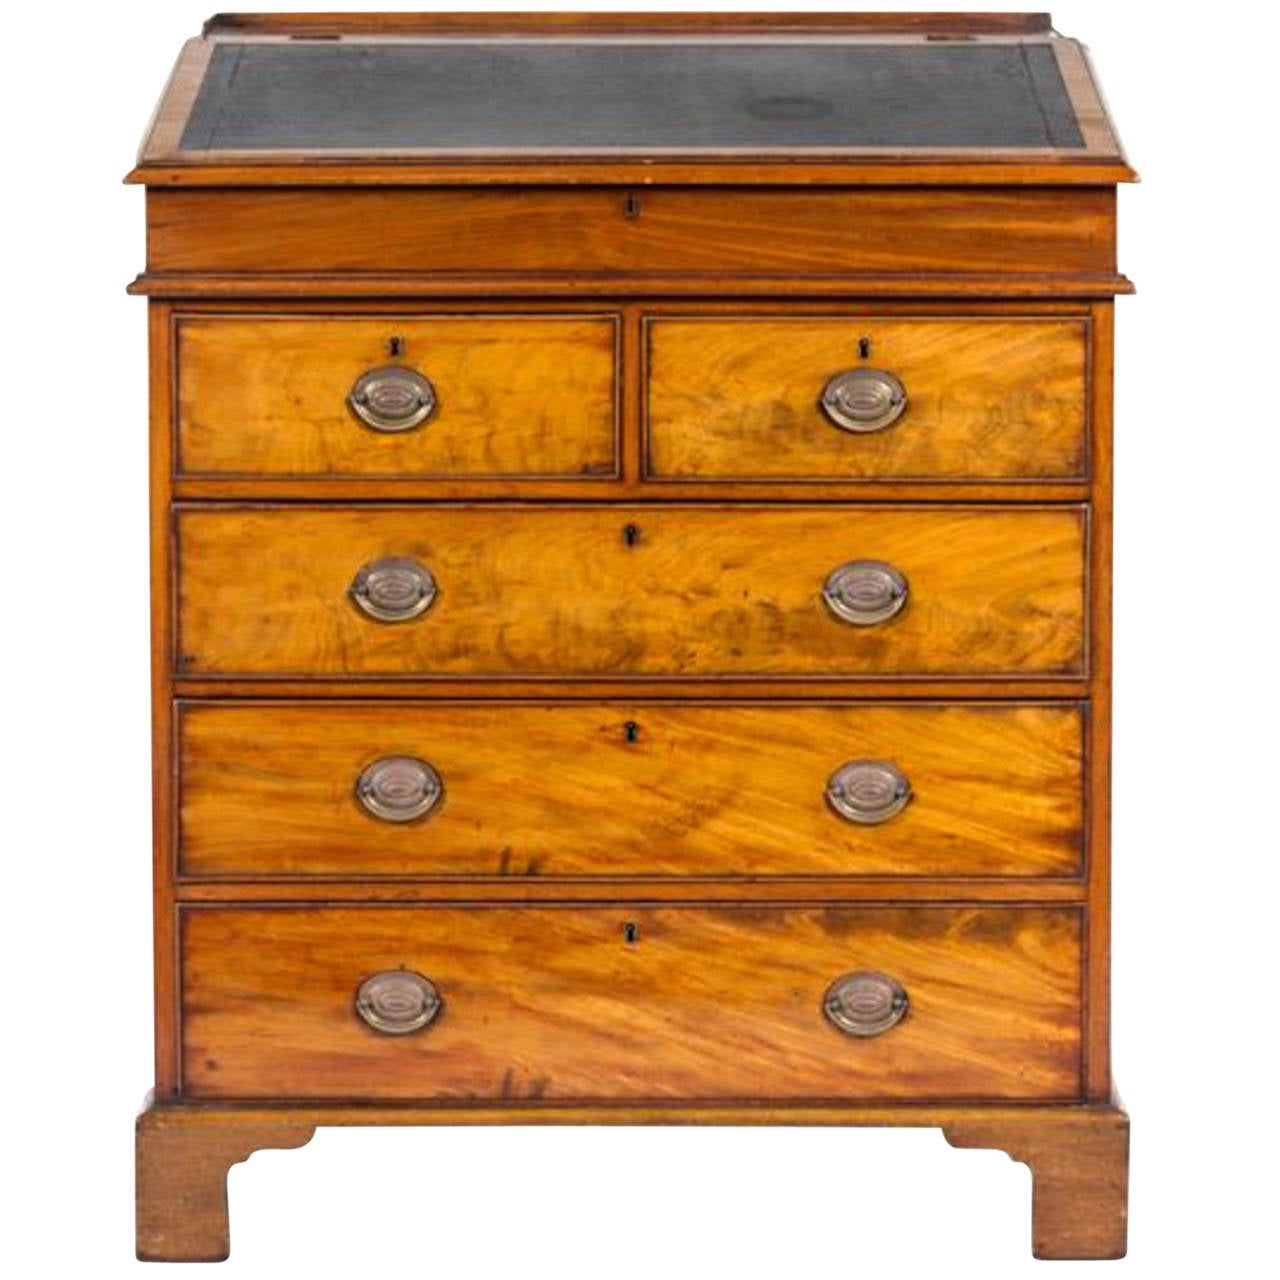 antique mahogany george iii bureau circa 1780 at 1stdibs. Black Bedroom Furniture Sets. Home Design Ideas